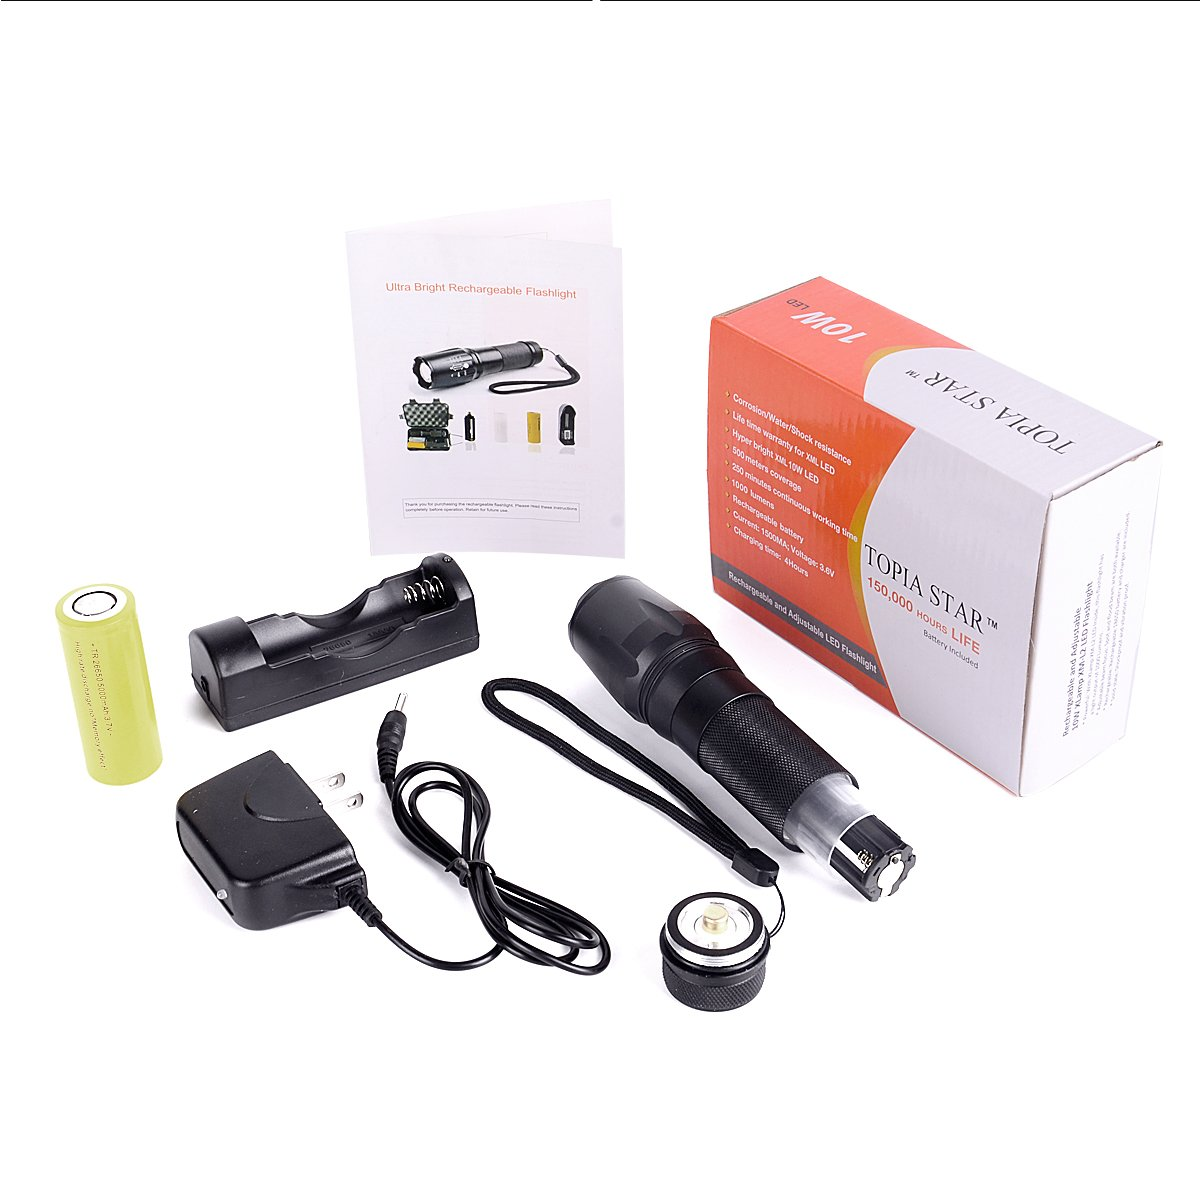 TOPIA STAR Powerful Flashlight, Professional Outdoor Warerproof Rechargeable Led Flashlight by TOPIA STAR (Image #8)